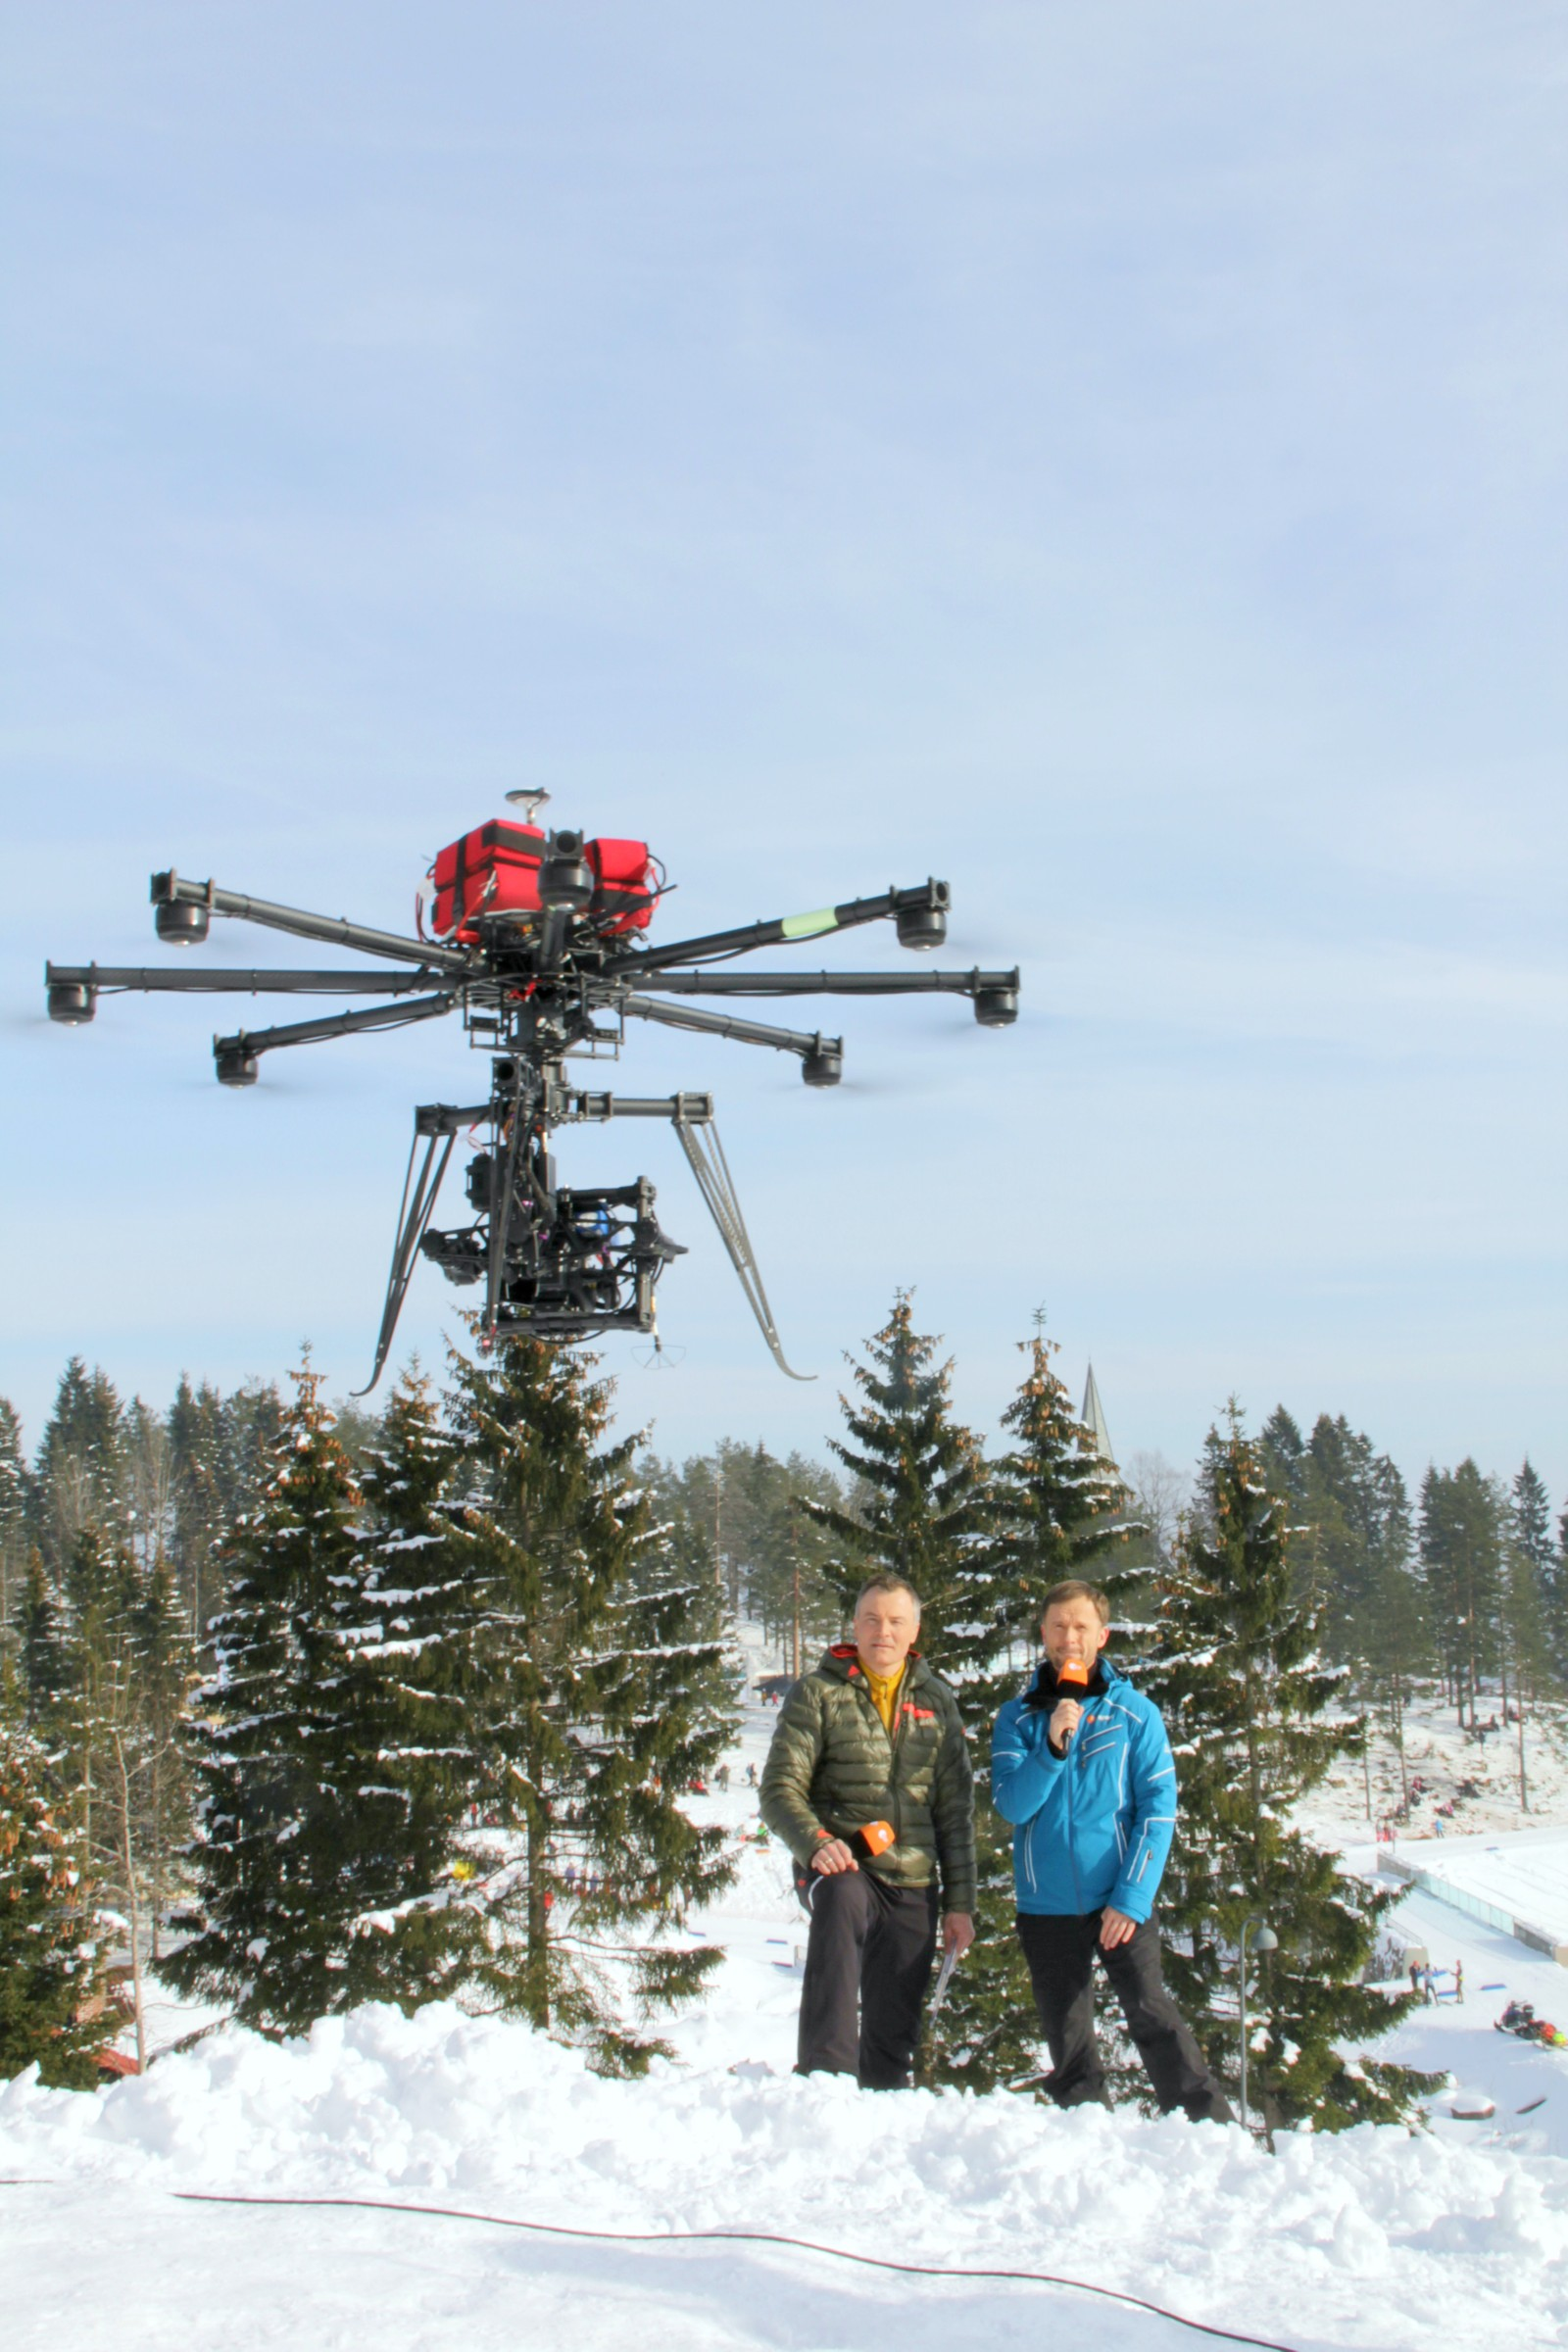 The NRK Host Broadcaster drone crew on an assignment German TV.